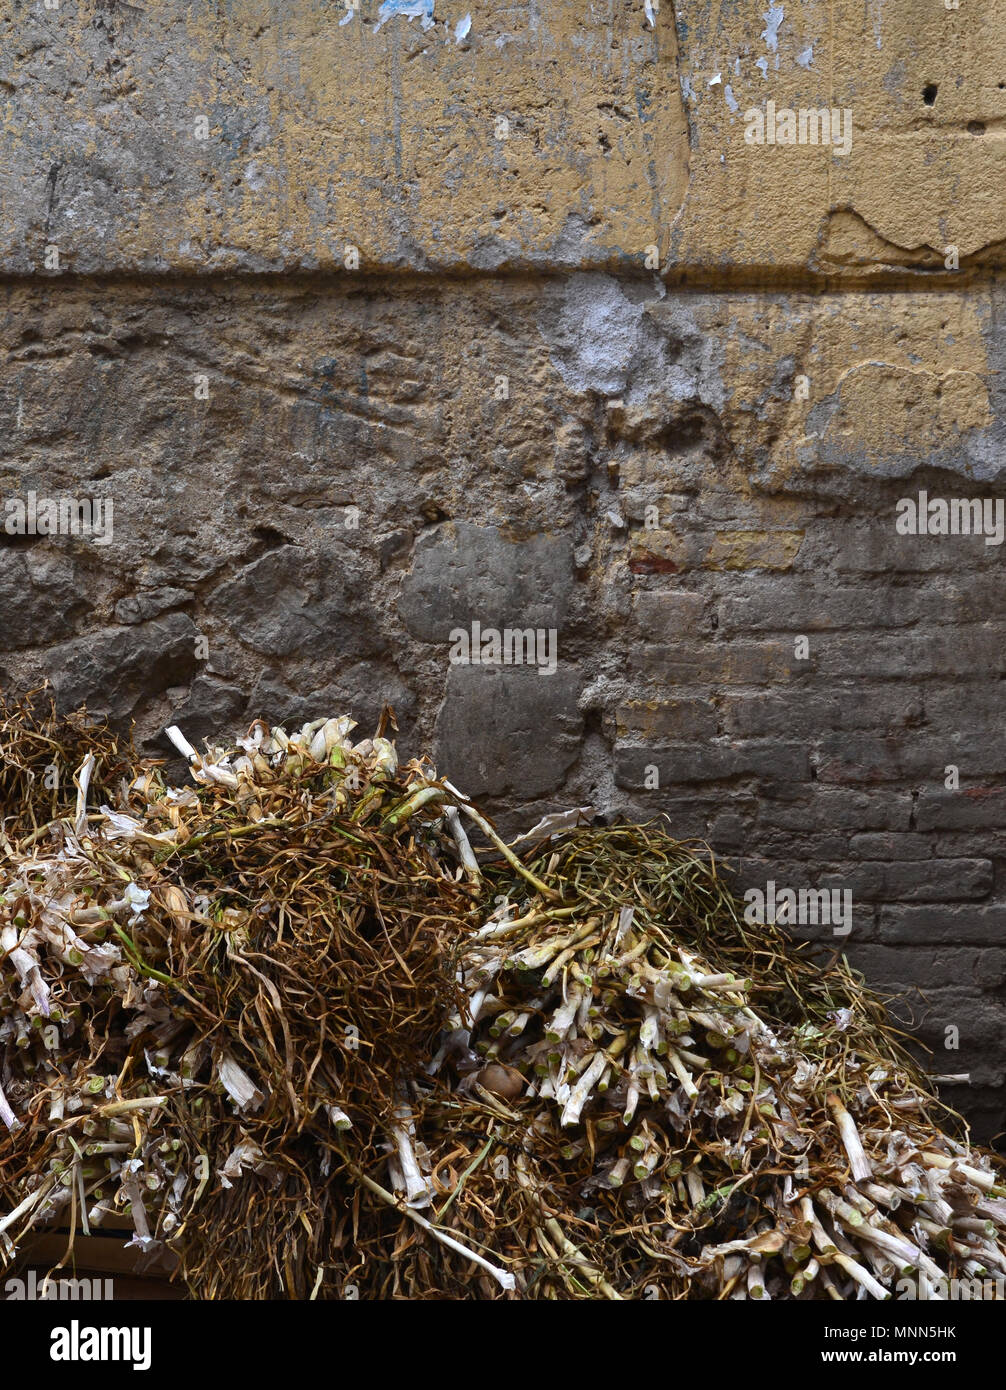 Fresh leeks piled high against an old stone wall in a Palermo market in Sicily - Stock Image